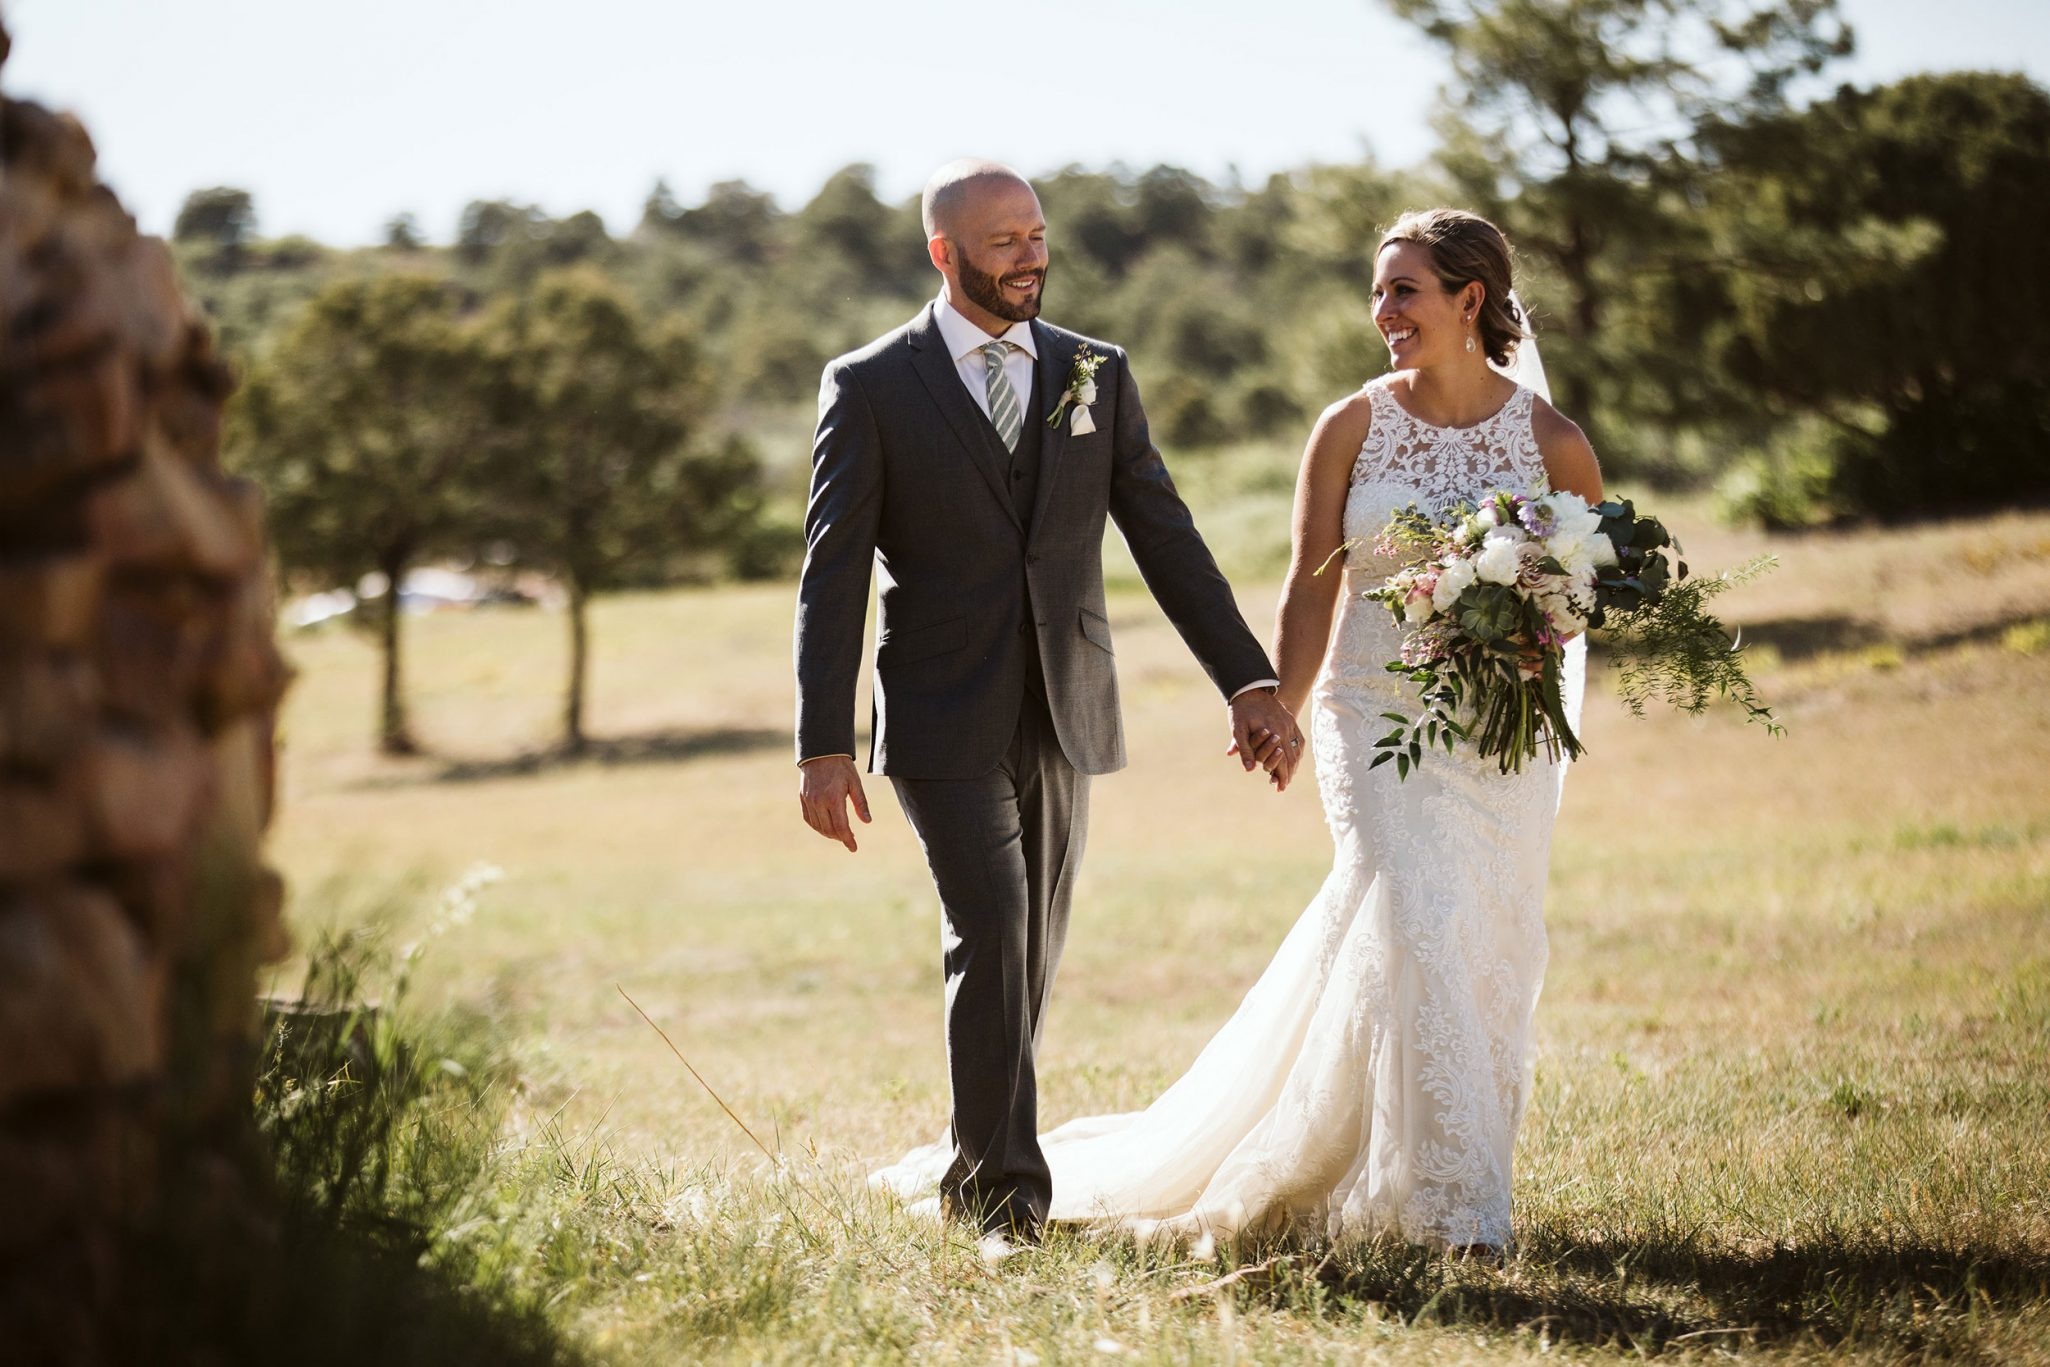 Happy bride & groom | Durango Weddings Magazine